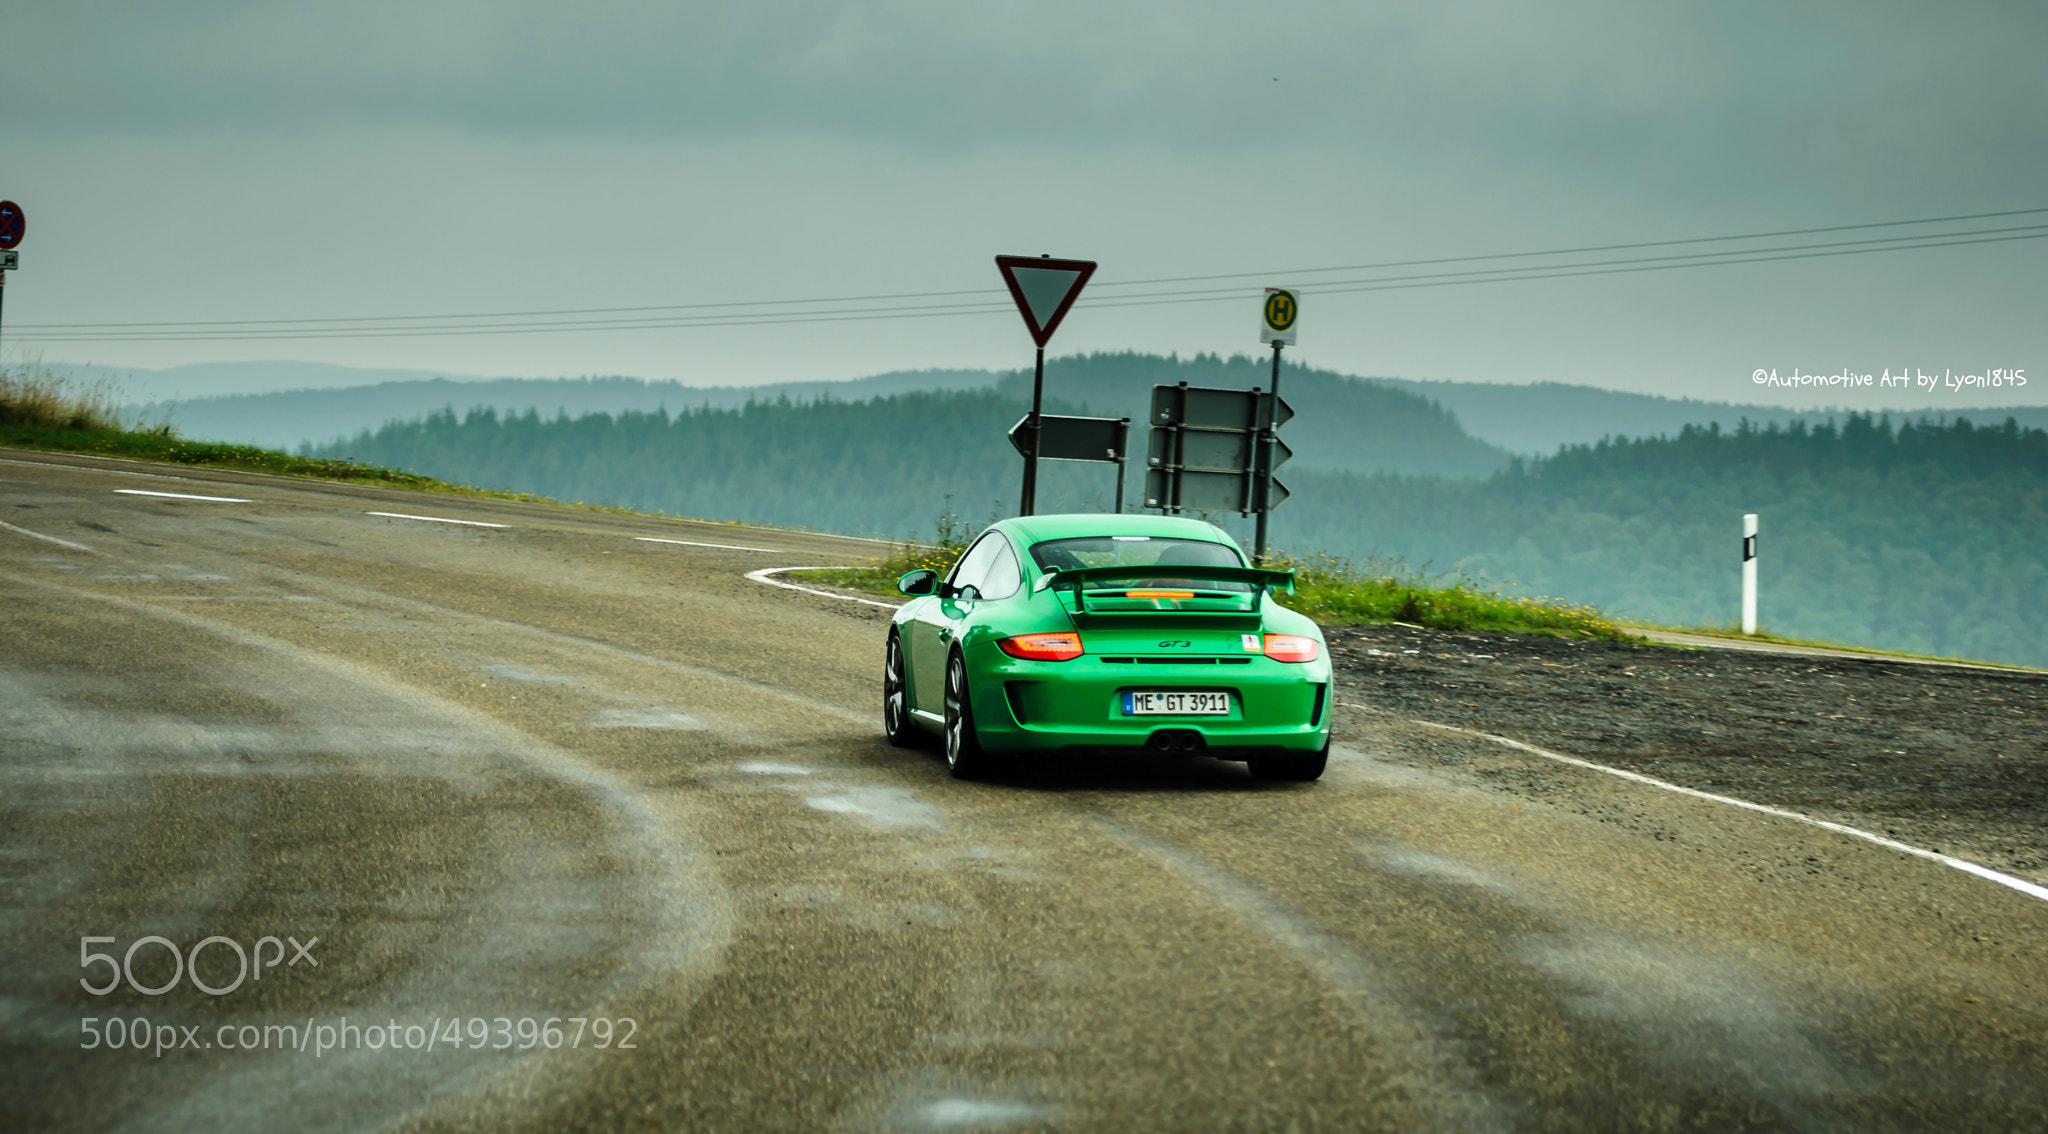 Photograph Porsche 997 GT3 by lyon1845 on 500px